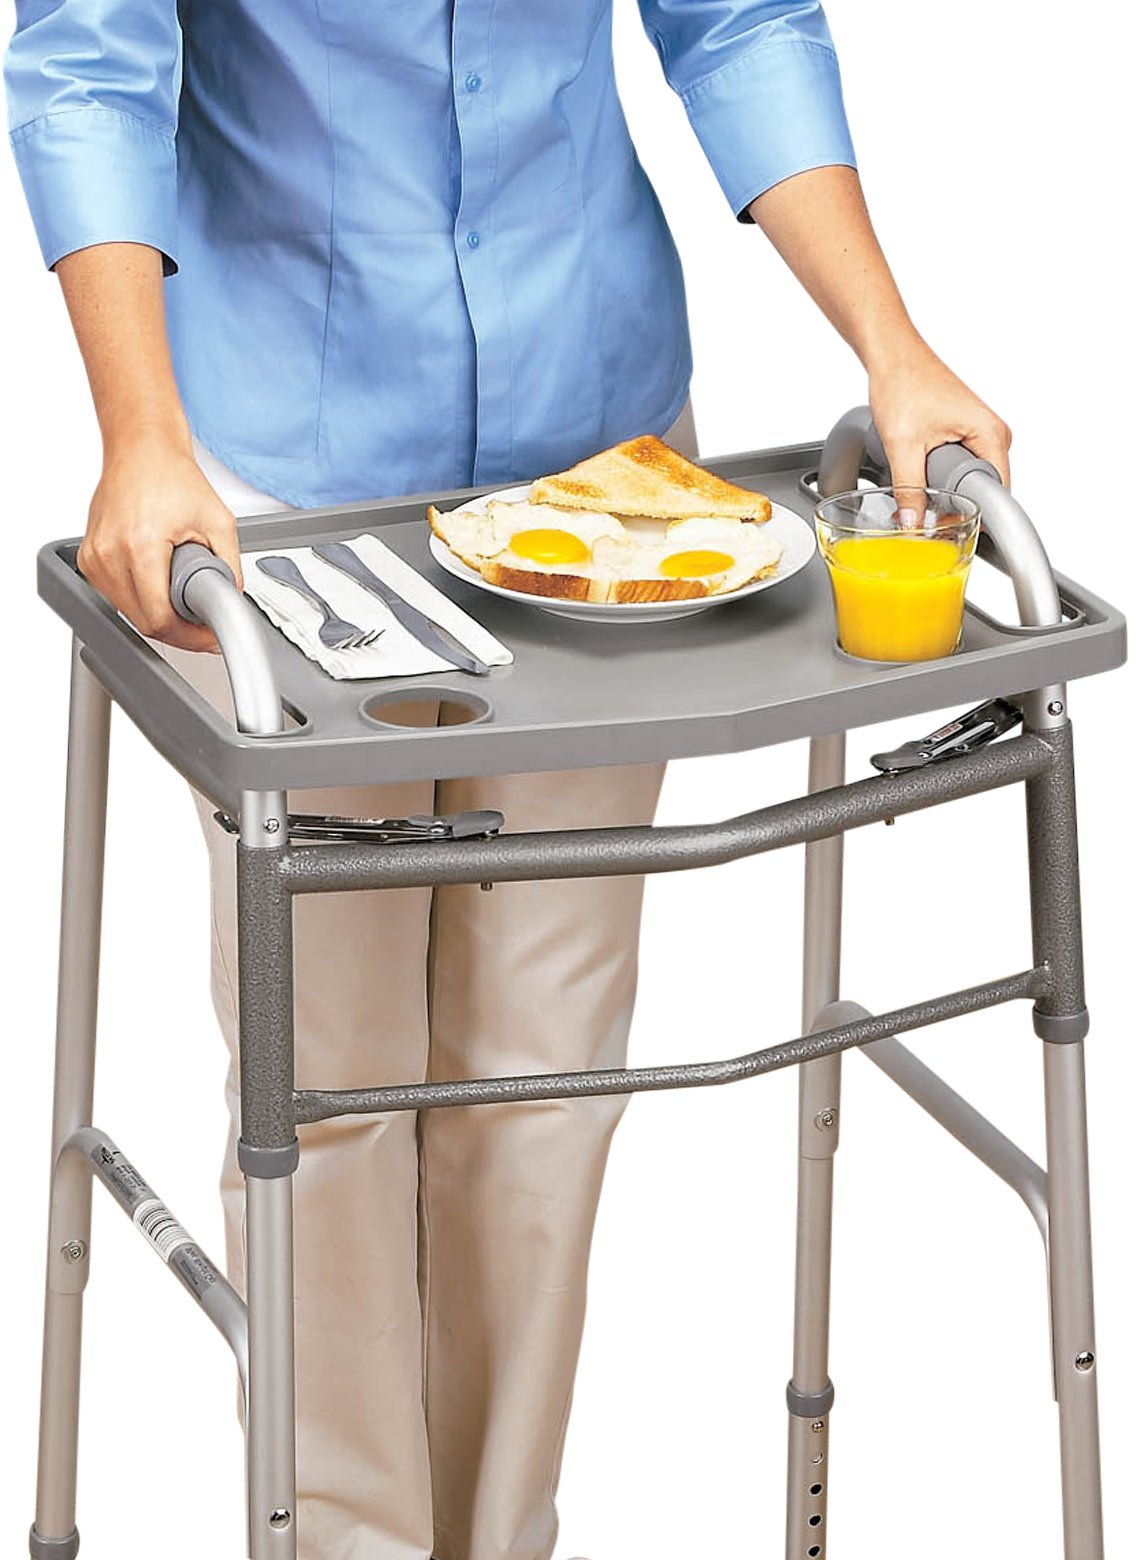 DMI Walker Tray With Cup Holders, Walker Tray For Folding Walkers, Gray